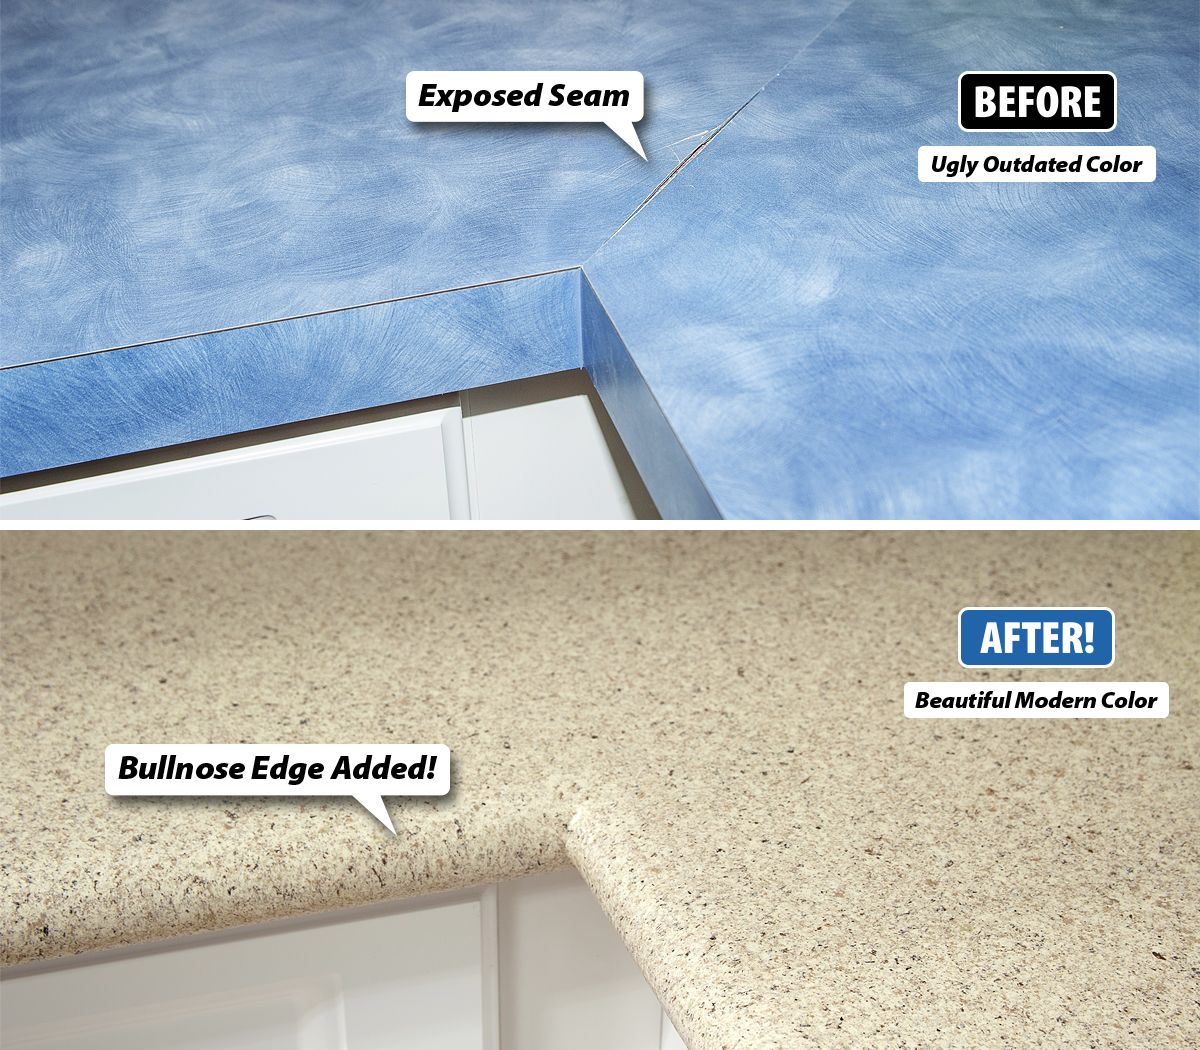 Laminate Countertops Scratch Easily, Can Crack Around The Seams And The  Edges Tend To Peel